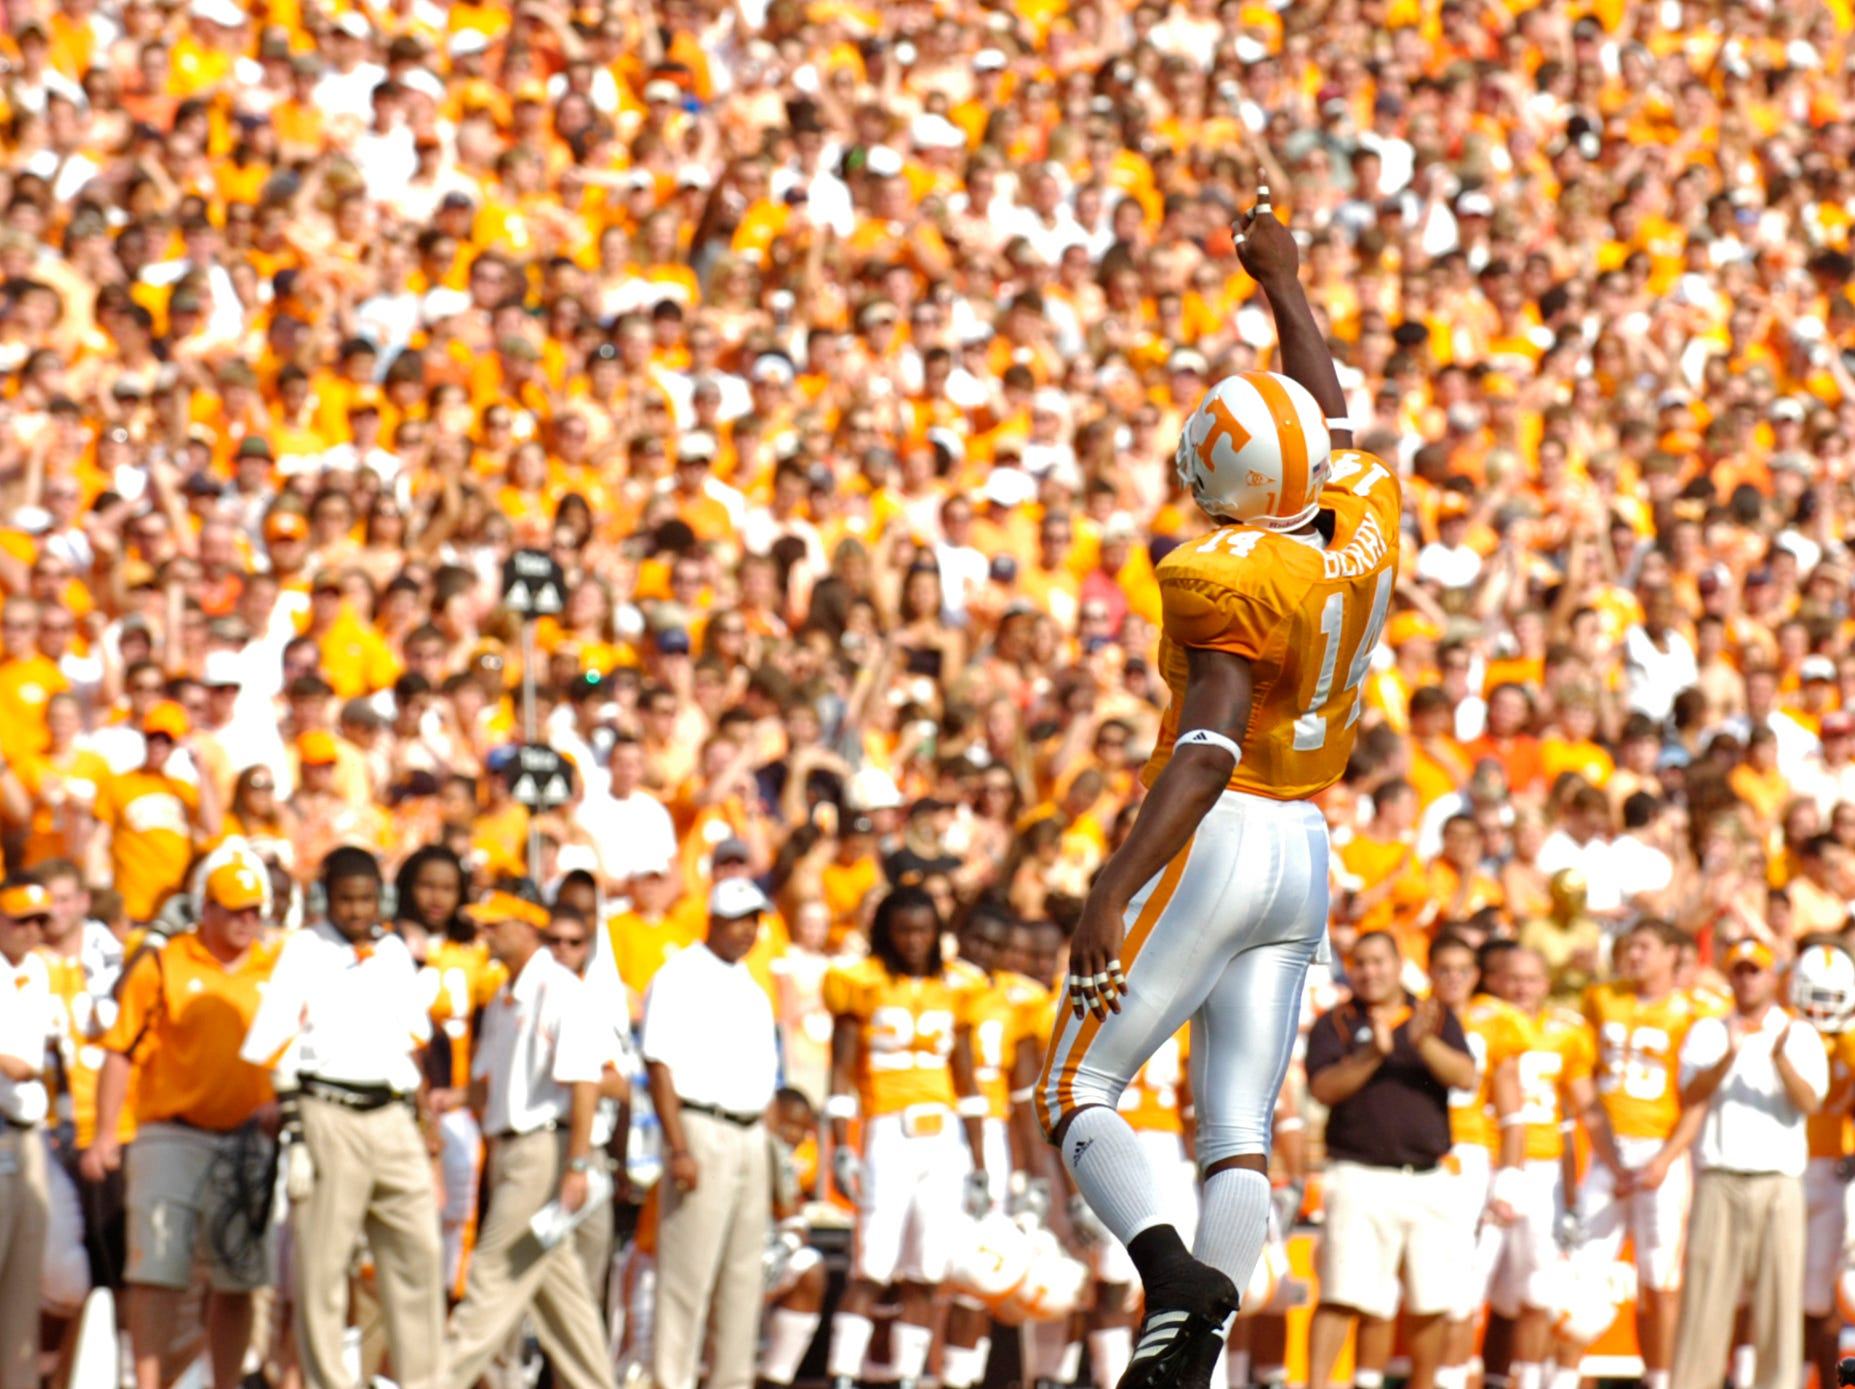 Tennessee cornerback Eric Berry (14) motions to the crowd after a tackle against UCLA on Saturday, September 12, 2009 at Neyland Stadium.